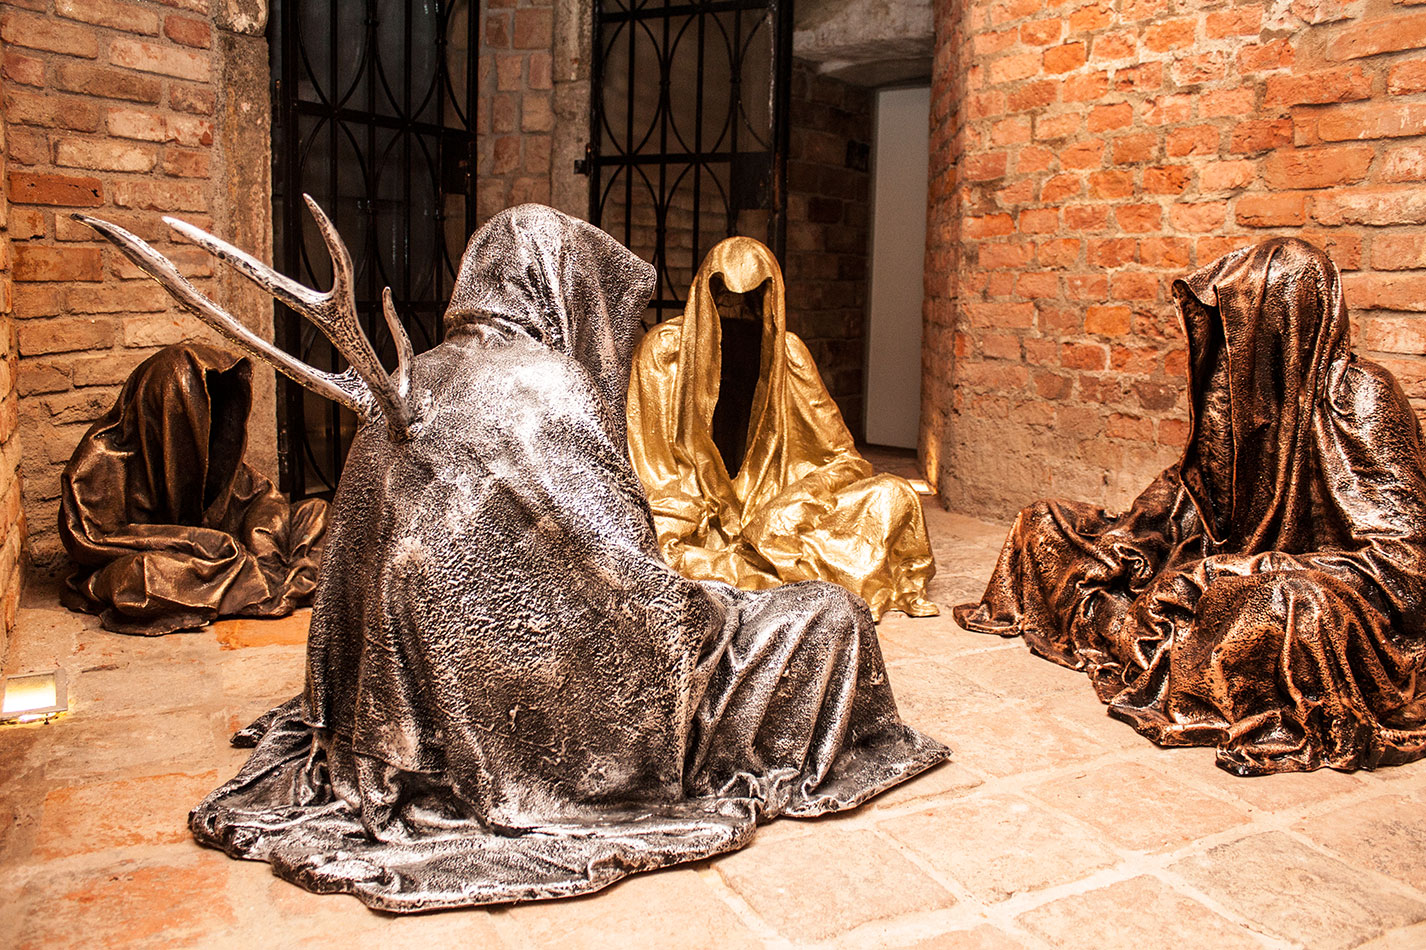 guardians-of-time-sculptor-manfred-kielnhofer-contemporary-modern-fine-arts-antique-sculpture-sttue-art-design-2532